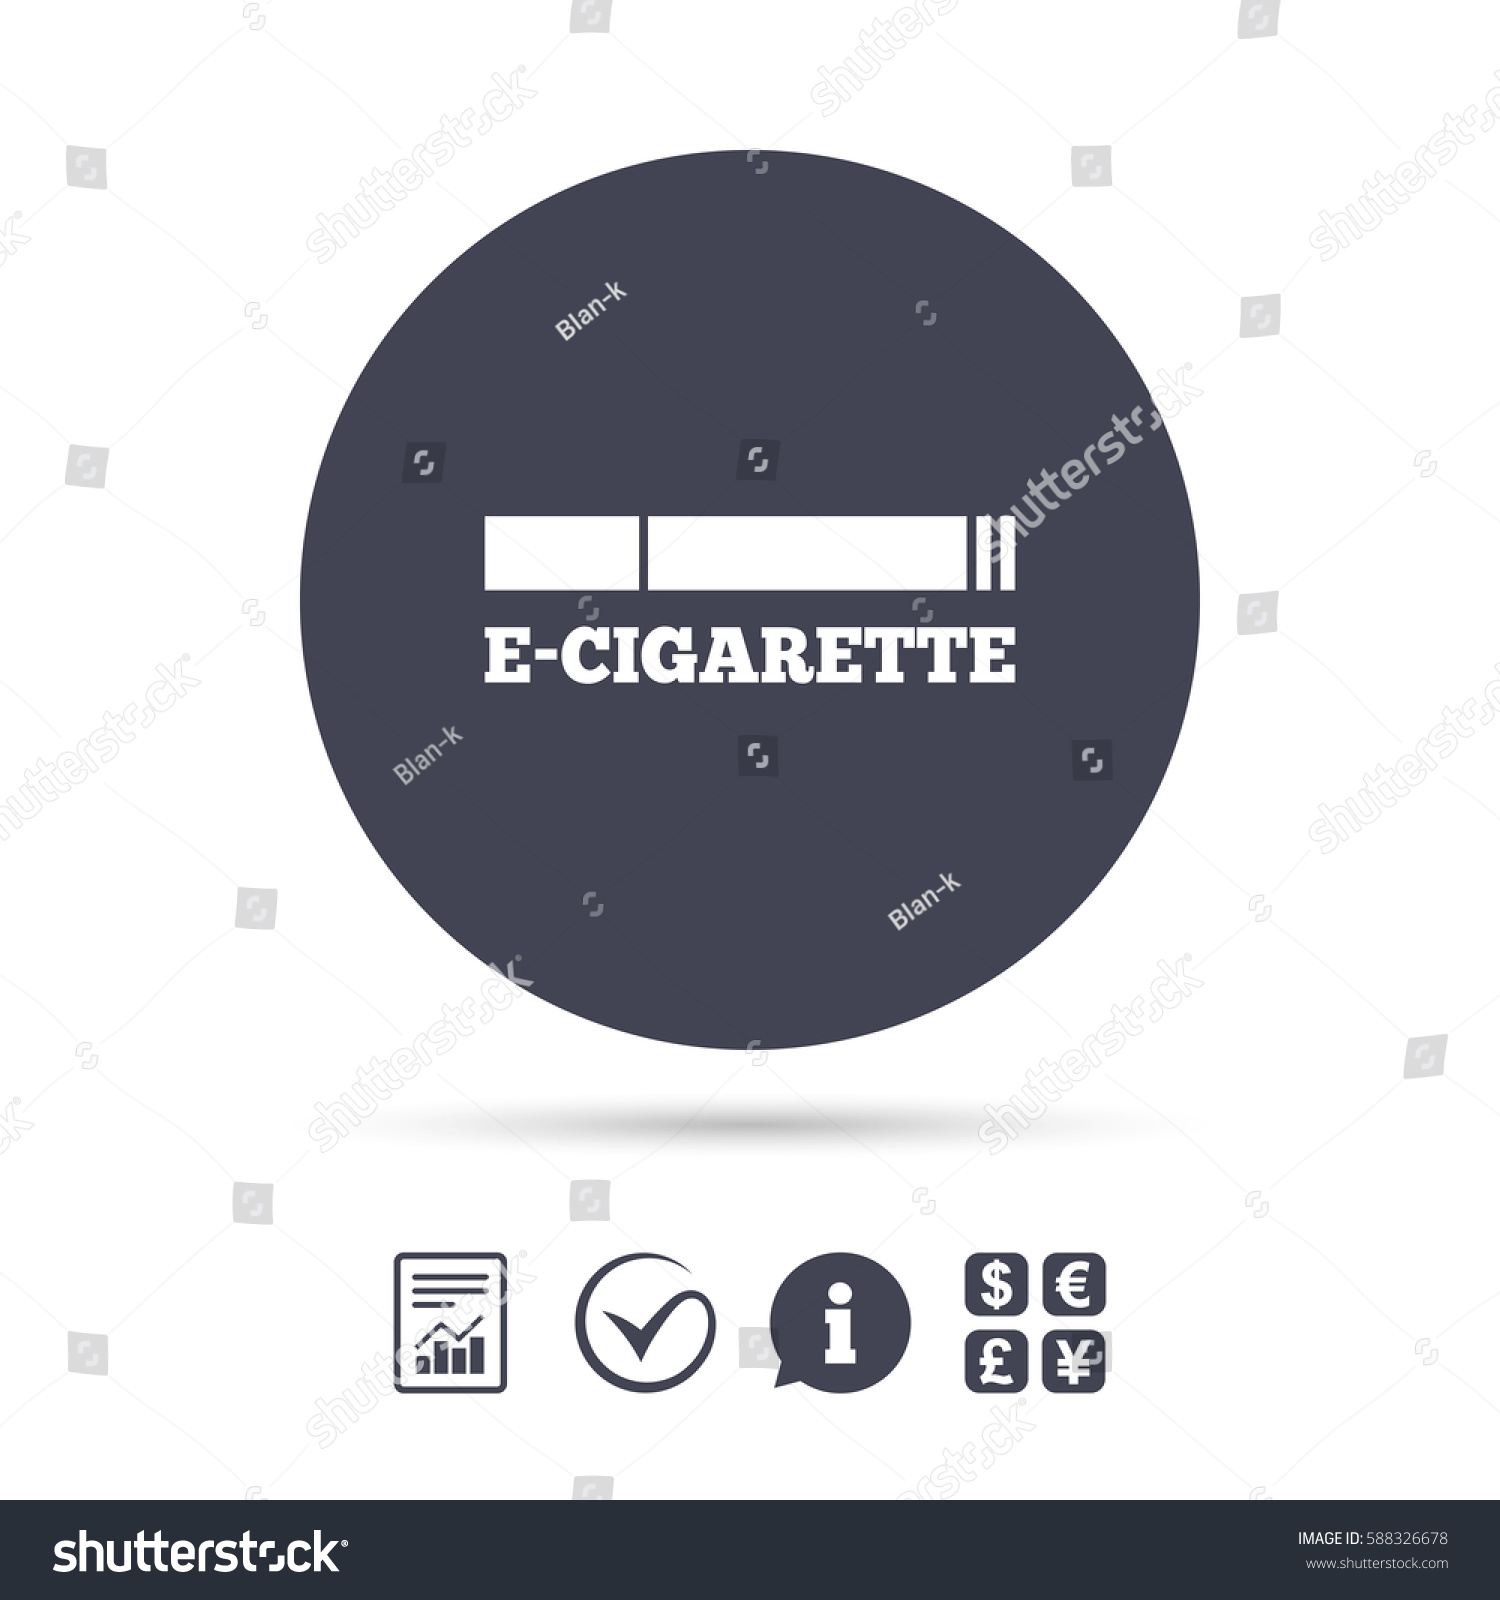 E cigs for weight loss